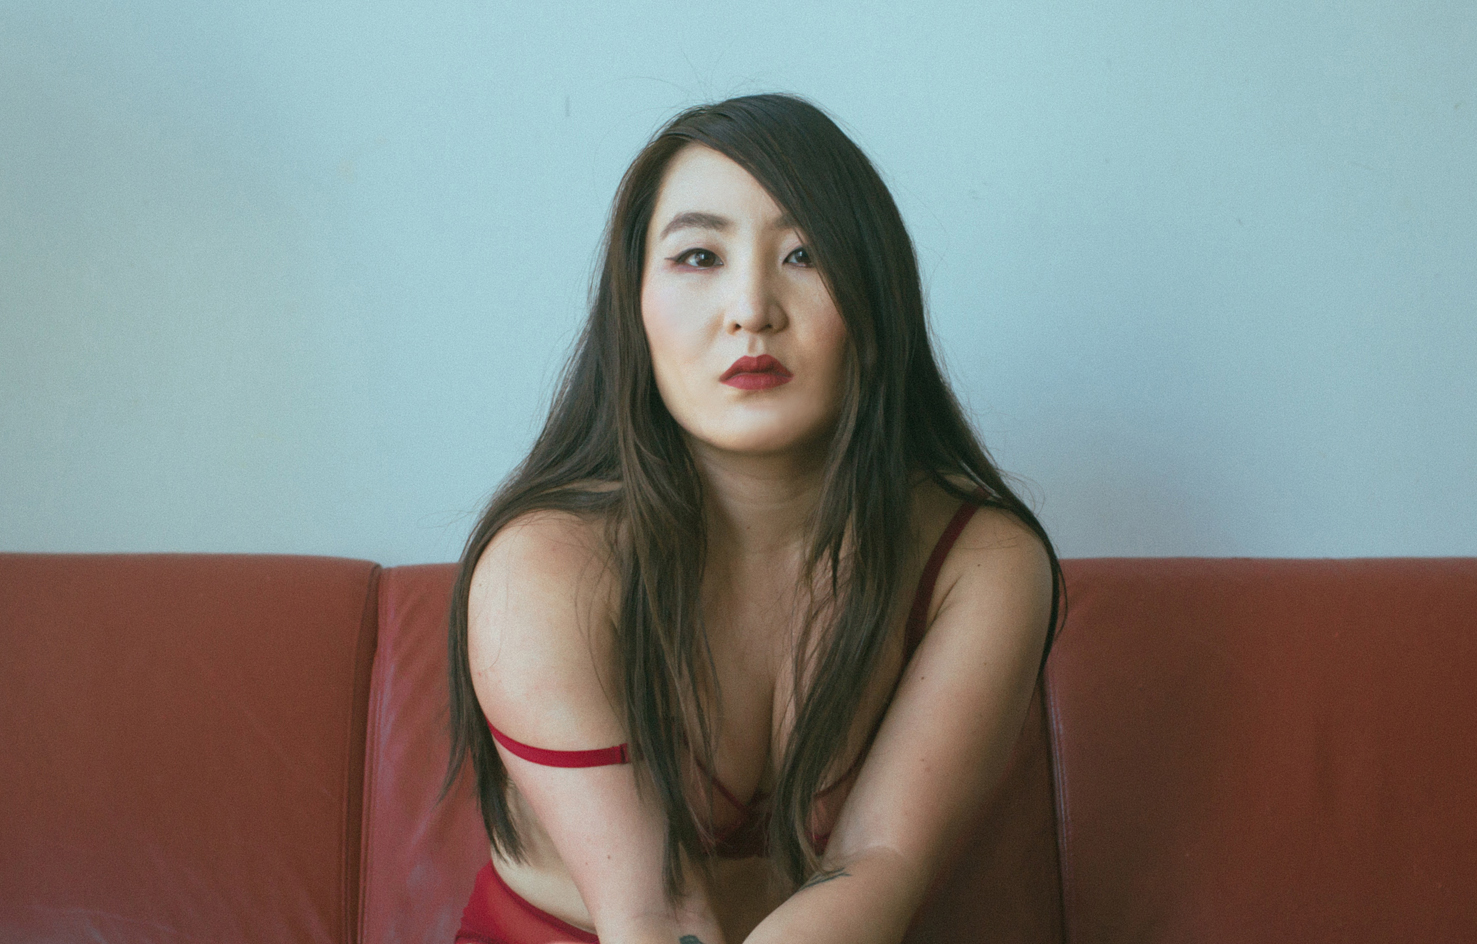 Nadia Guo: The criminal lawyer who was outed as a sex worker